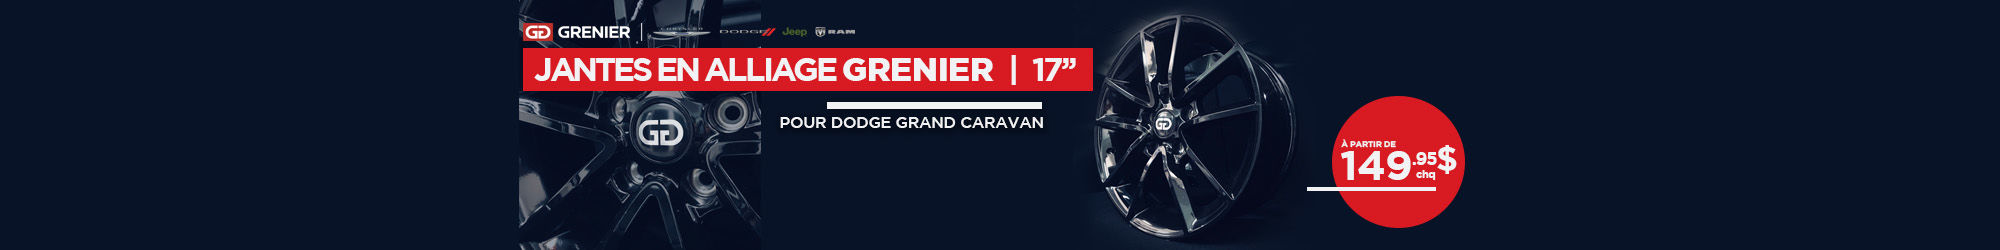 Jantes GRENIER en alliage - Grand Caravan (Copie)